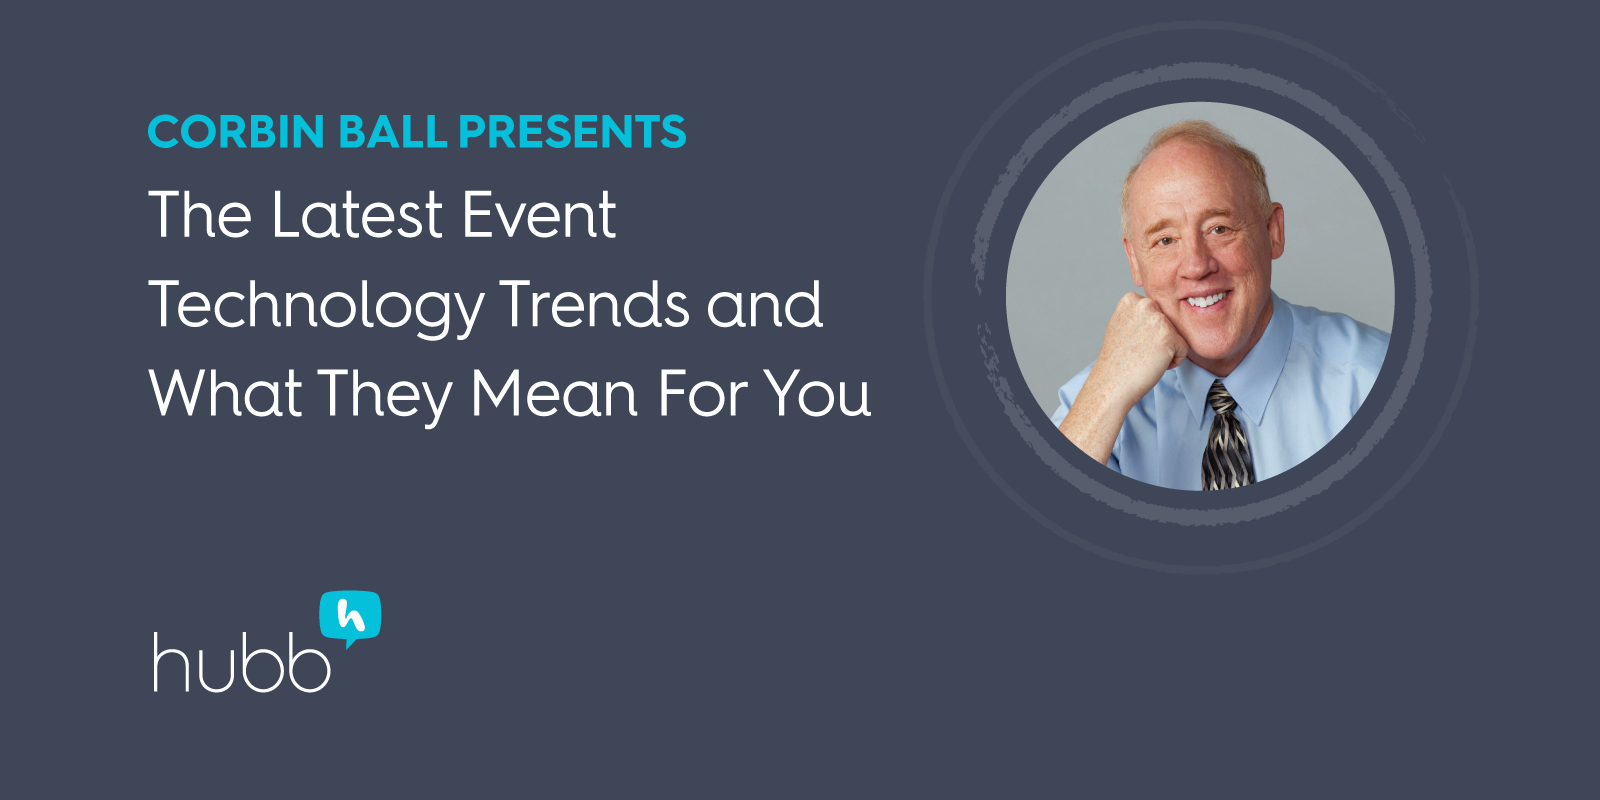 [Webinar] The Latest Event Technology Trends and What They Mean For You